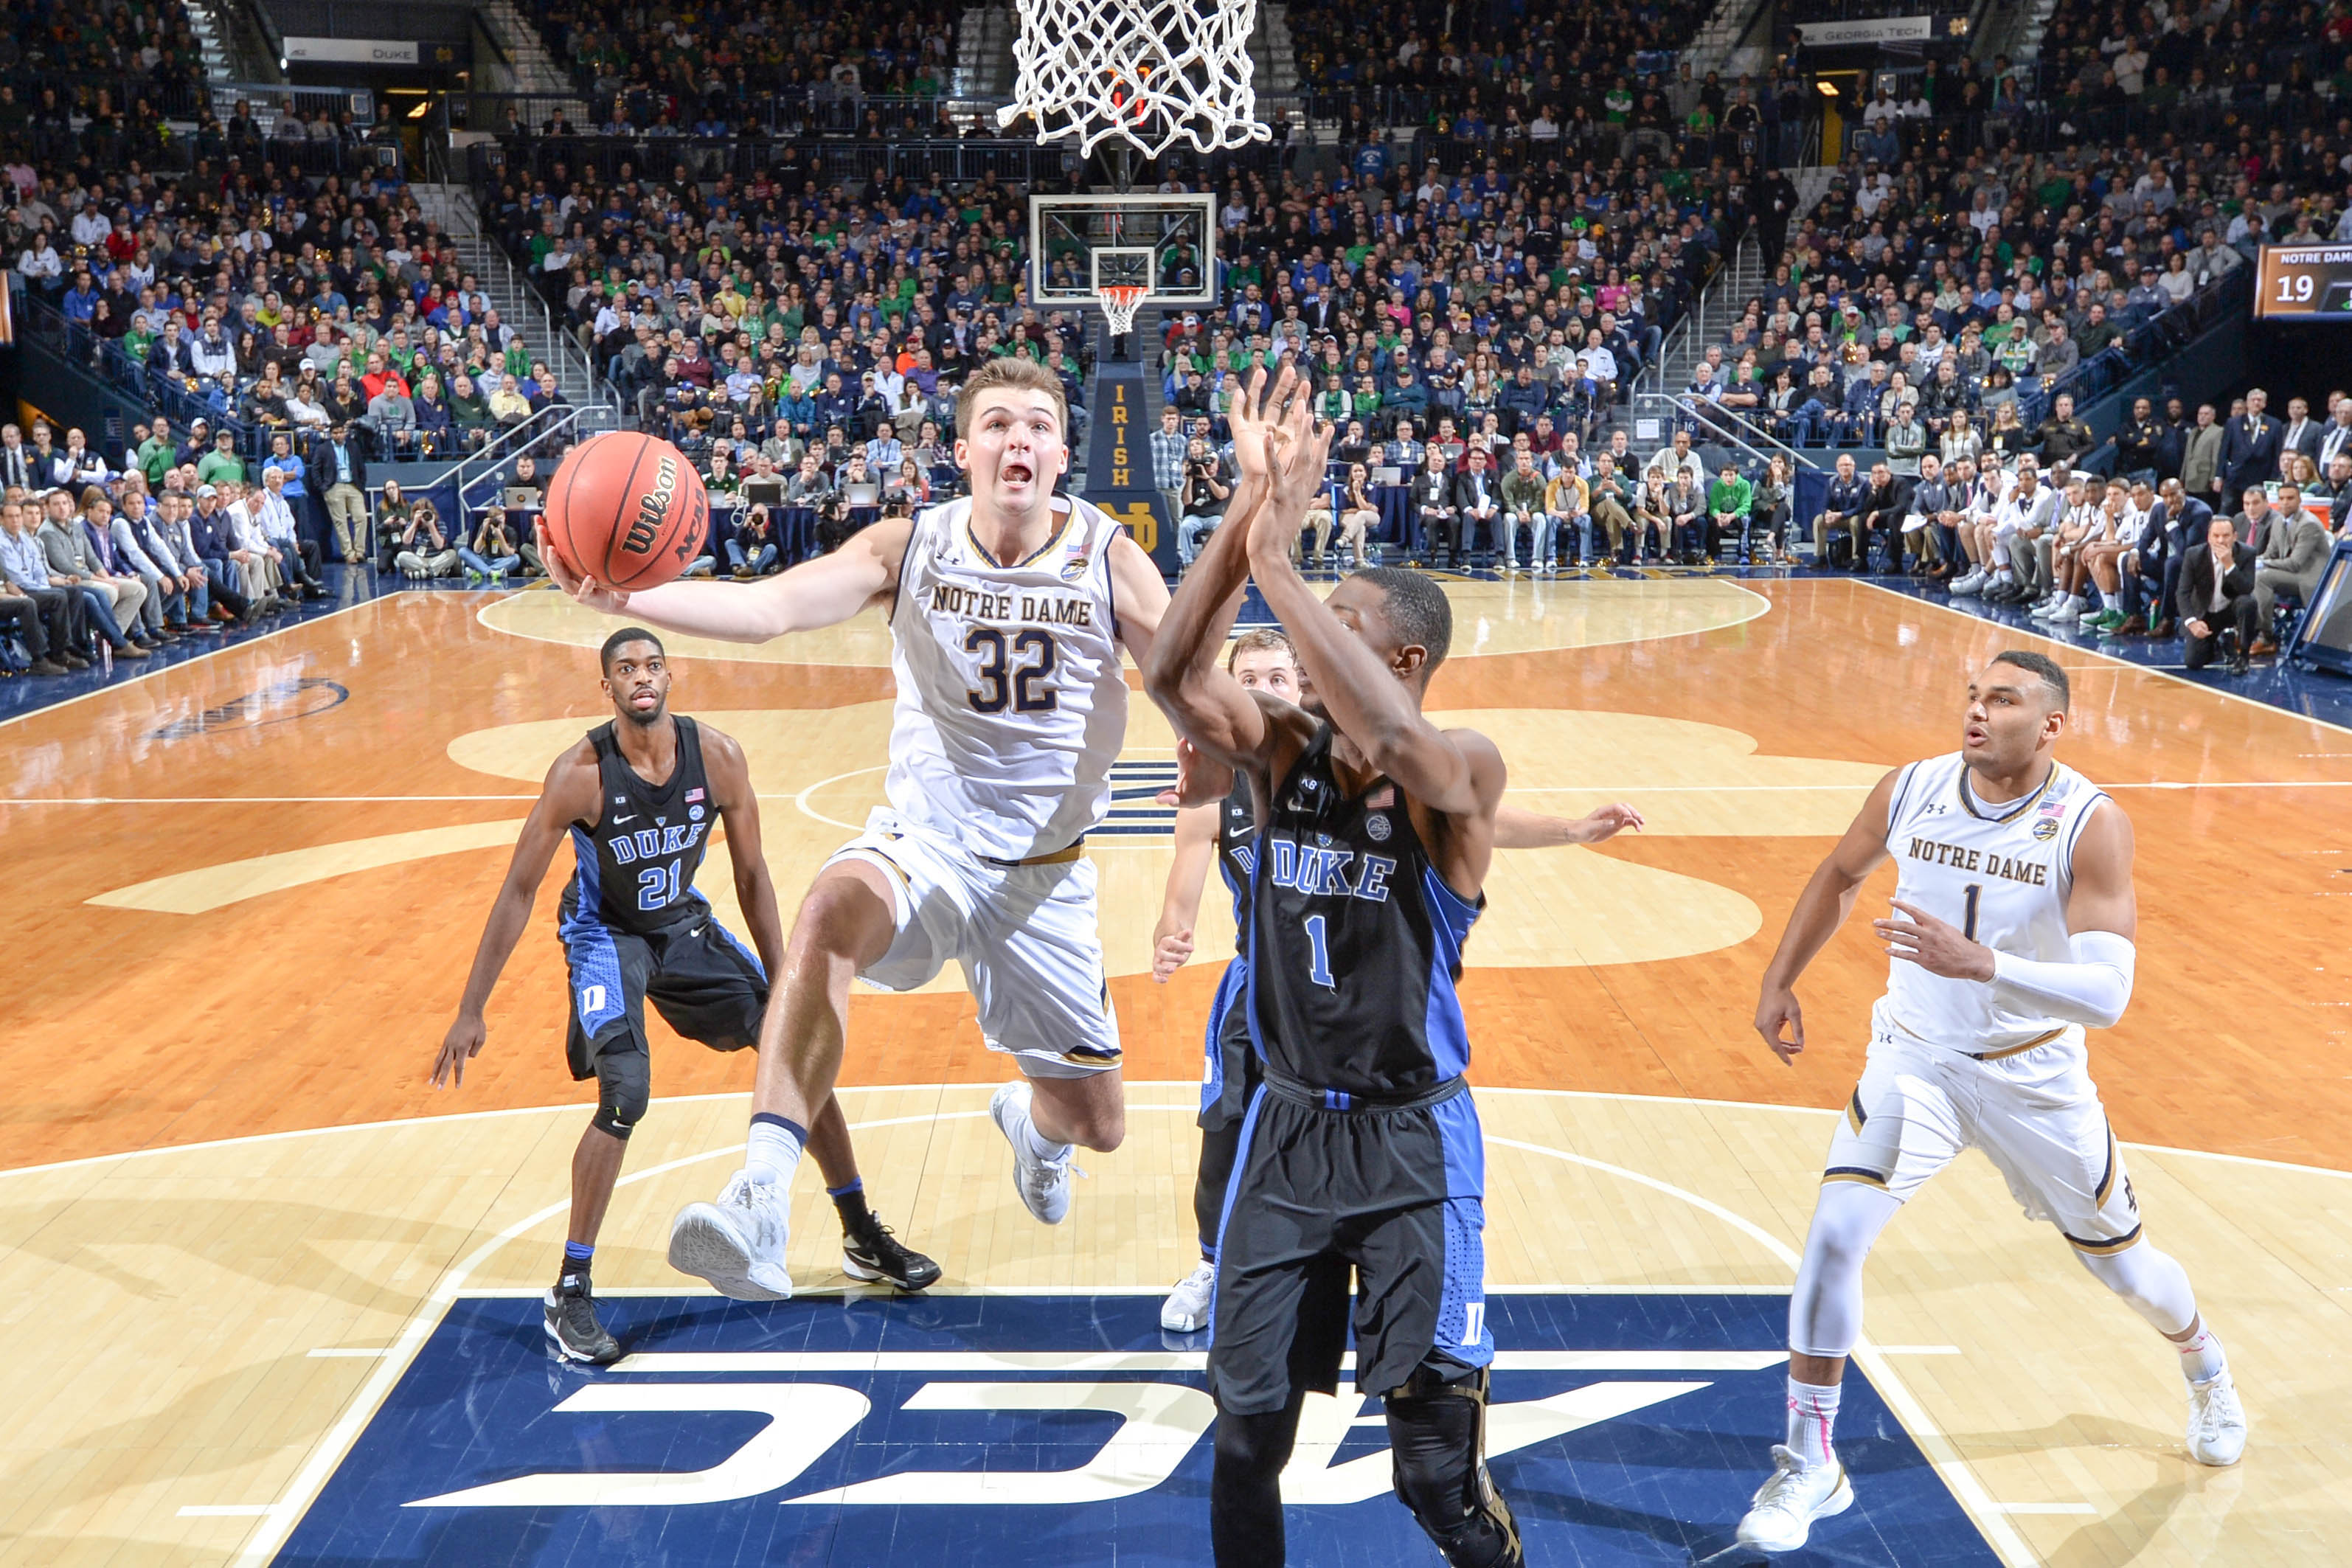 Jan 30, 2017; South Bend, IN, USA; Notre Dame Fighting Irish guard Steve Vasturia (32) shoots as Duke Blue Devils forward Harry Giles (1) defends in the first half at the Purcell Pavilion. Duke won 84-74. Mandatory Credit: Matt Cashore-USA TODAY Sports